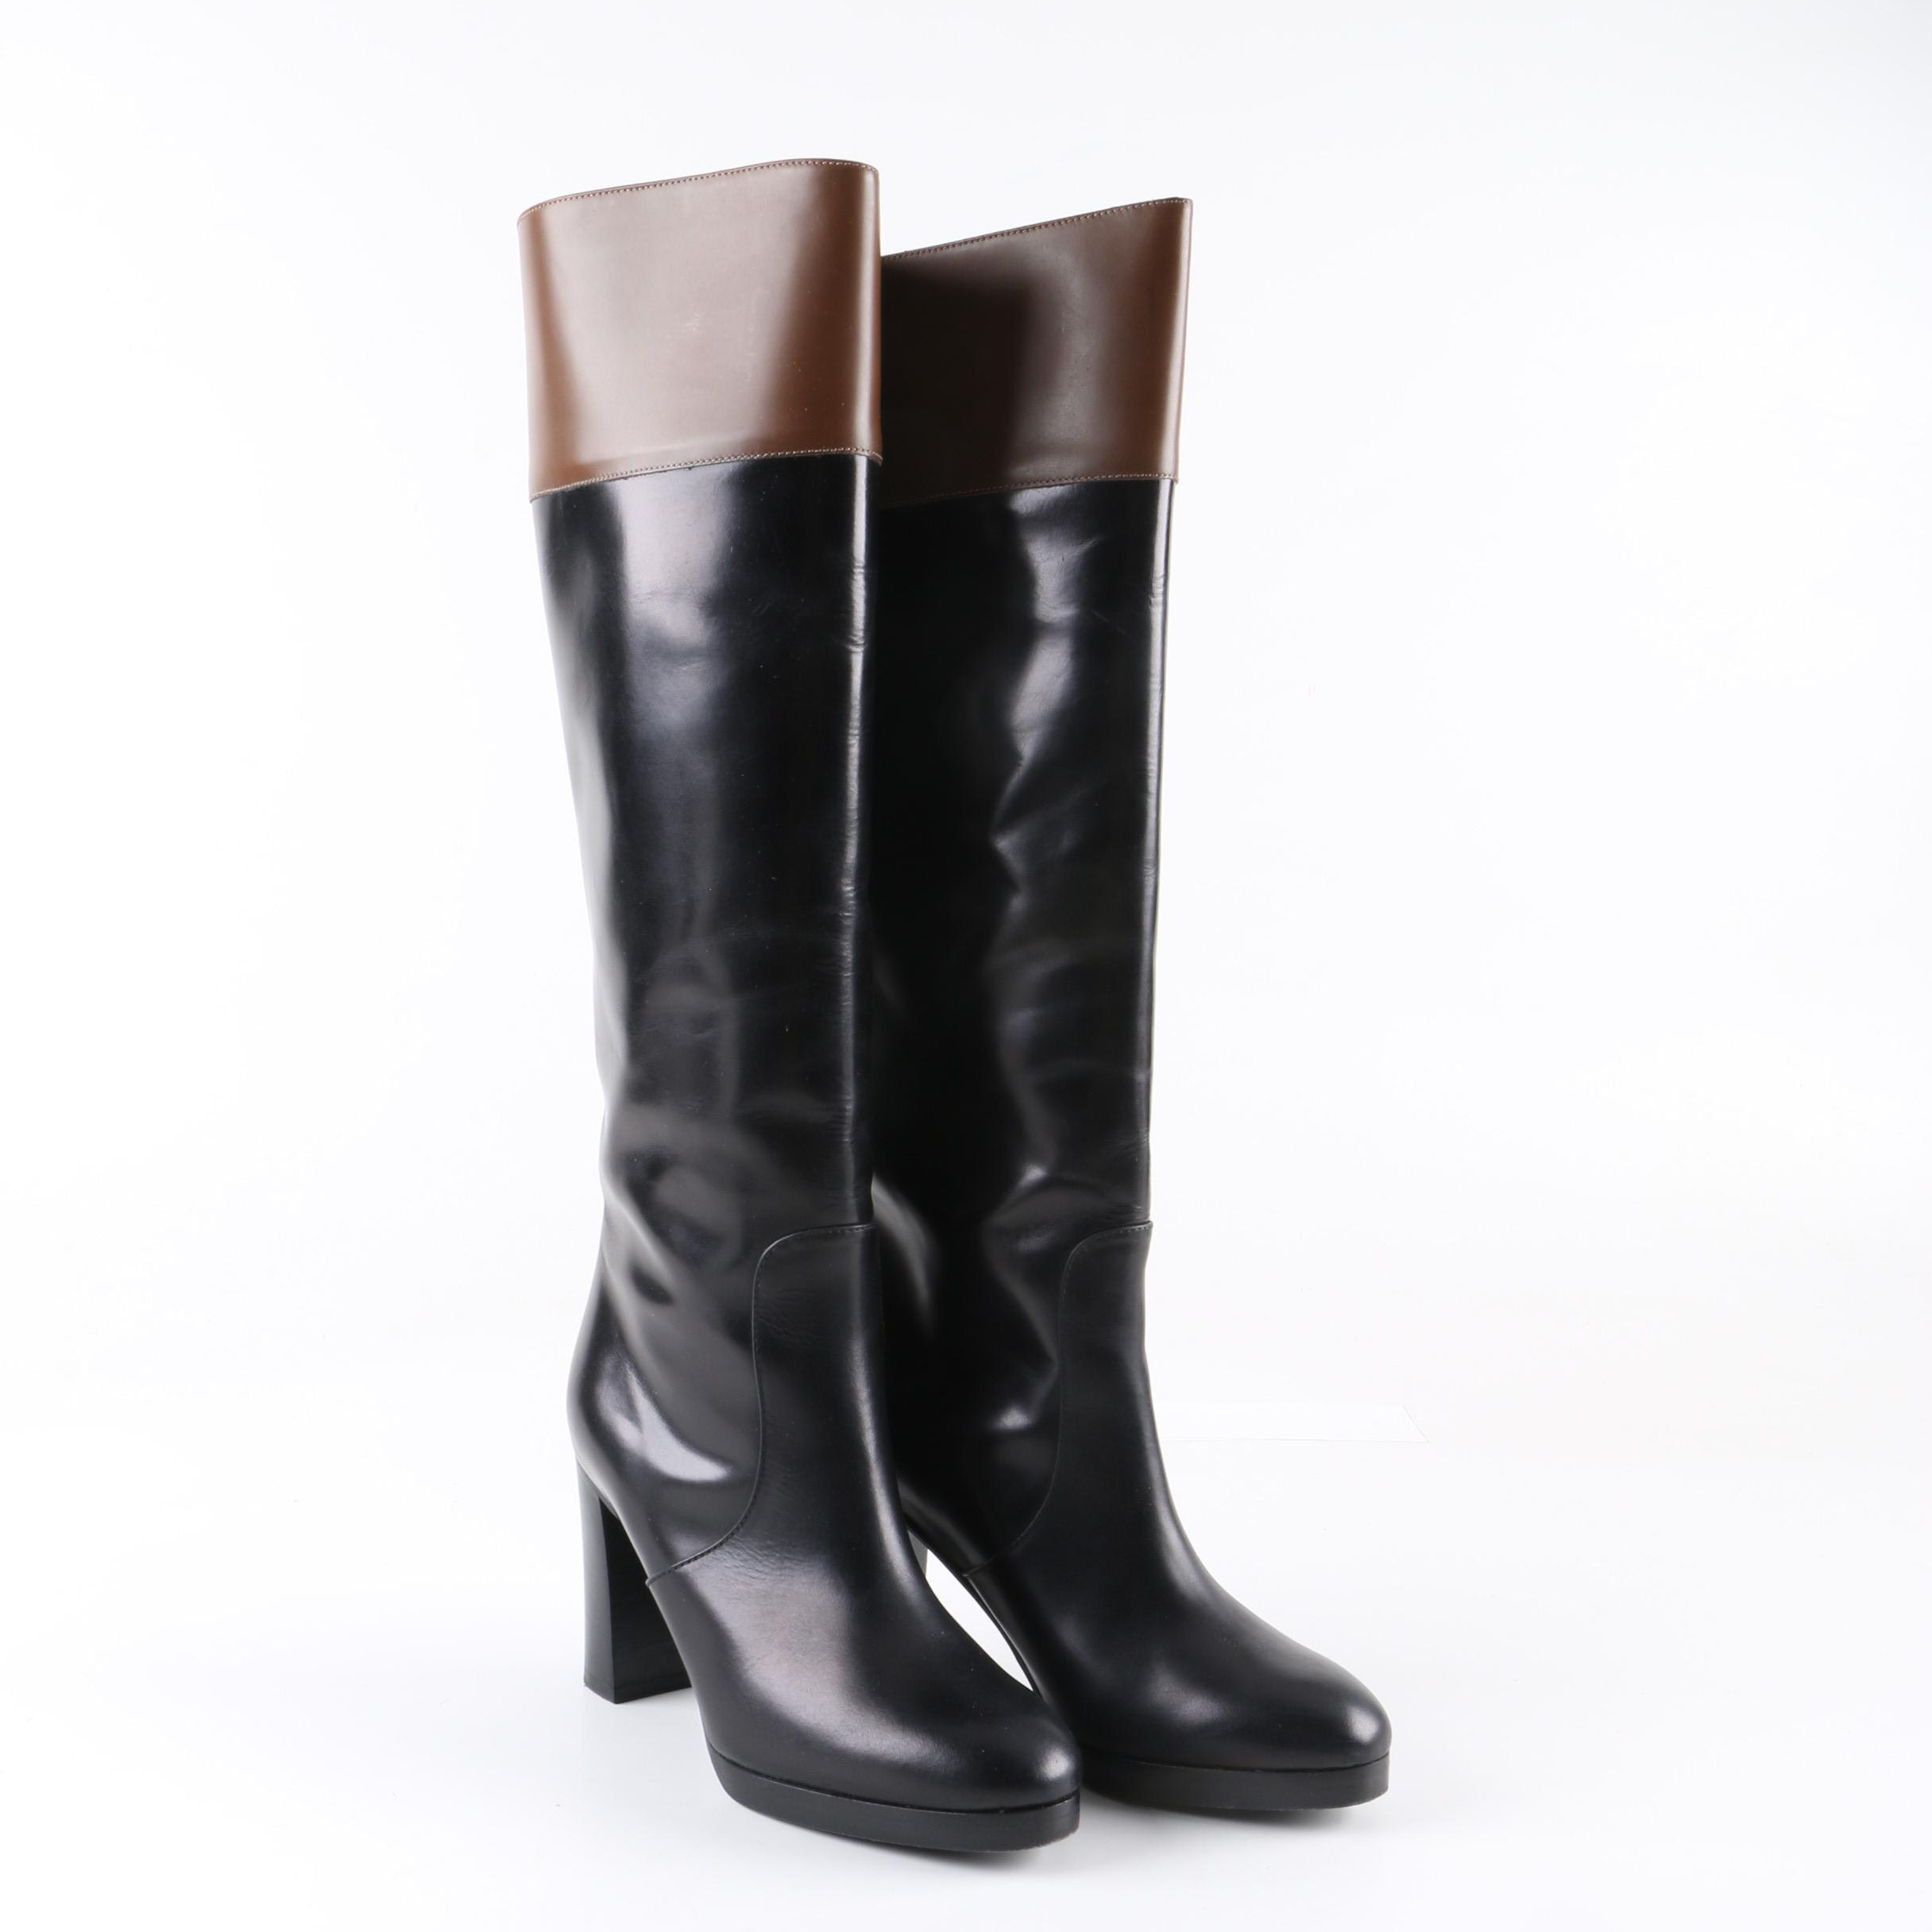 Women's Michael Kors Black Leather Knee-High Boots Accented with Brown